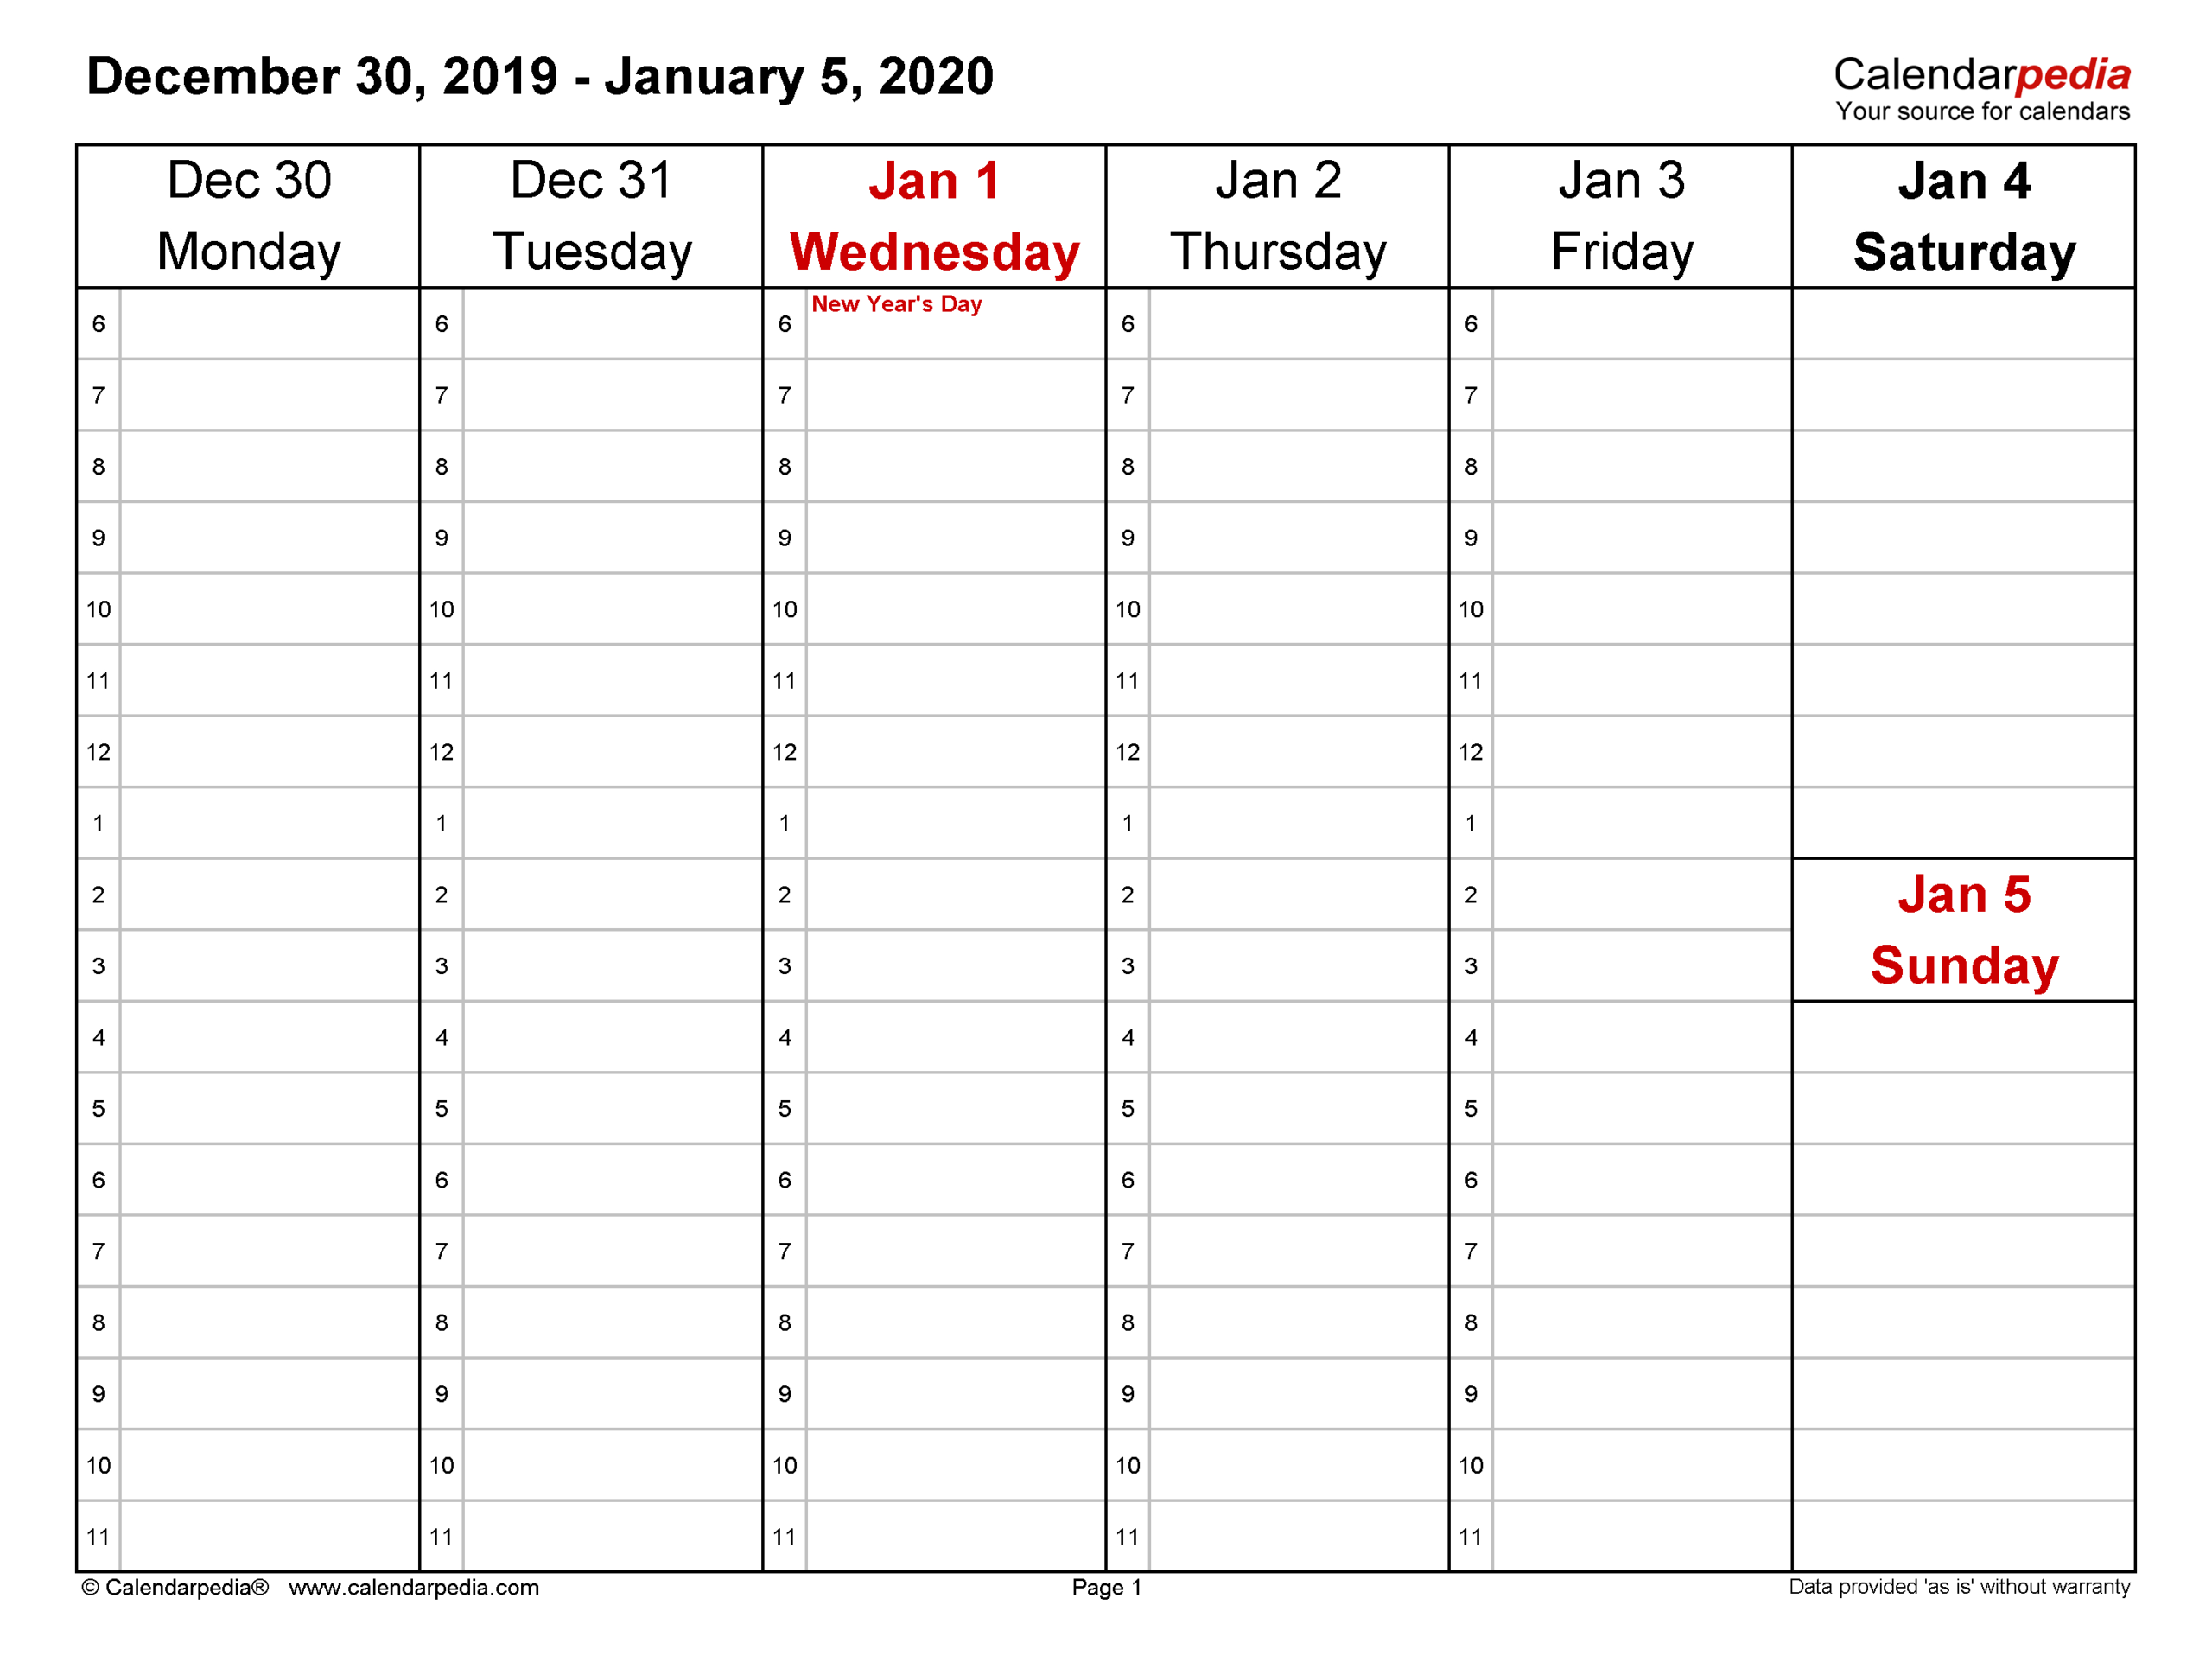 Weekly Calendars 2020 For Word - 12 Free Printable Templates with regard to Calendar November December January Space To Write At The Side